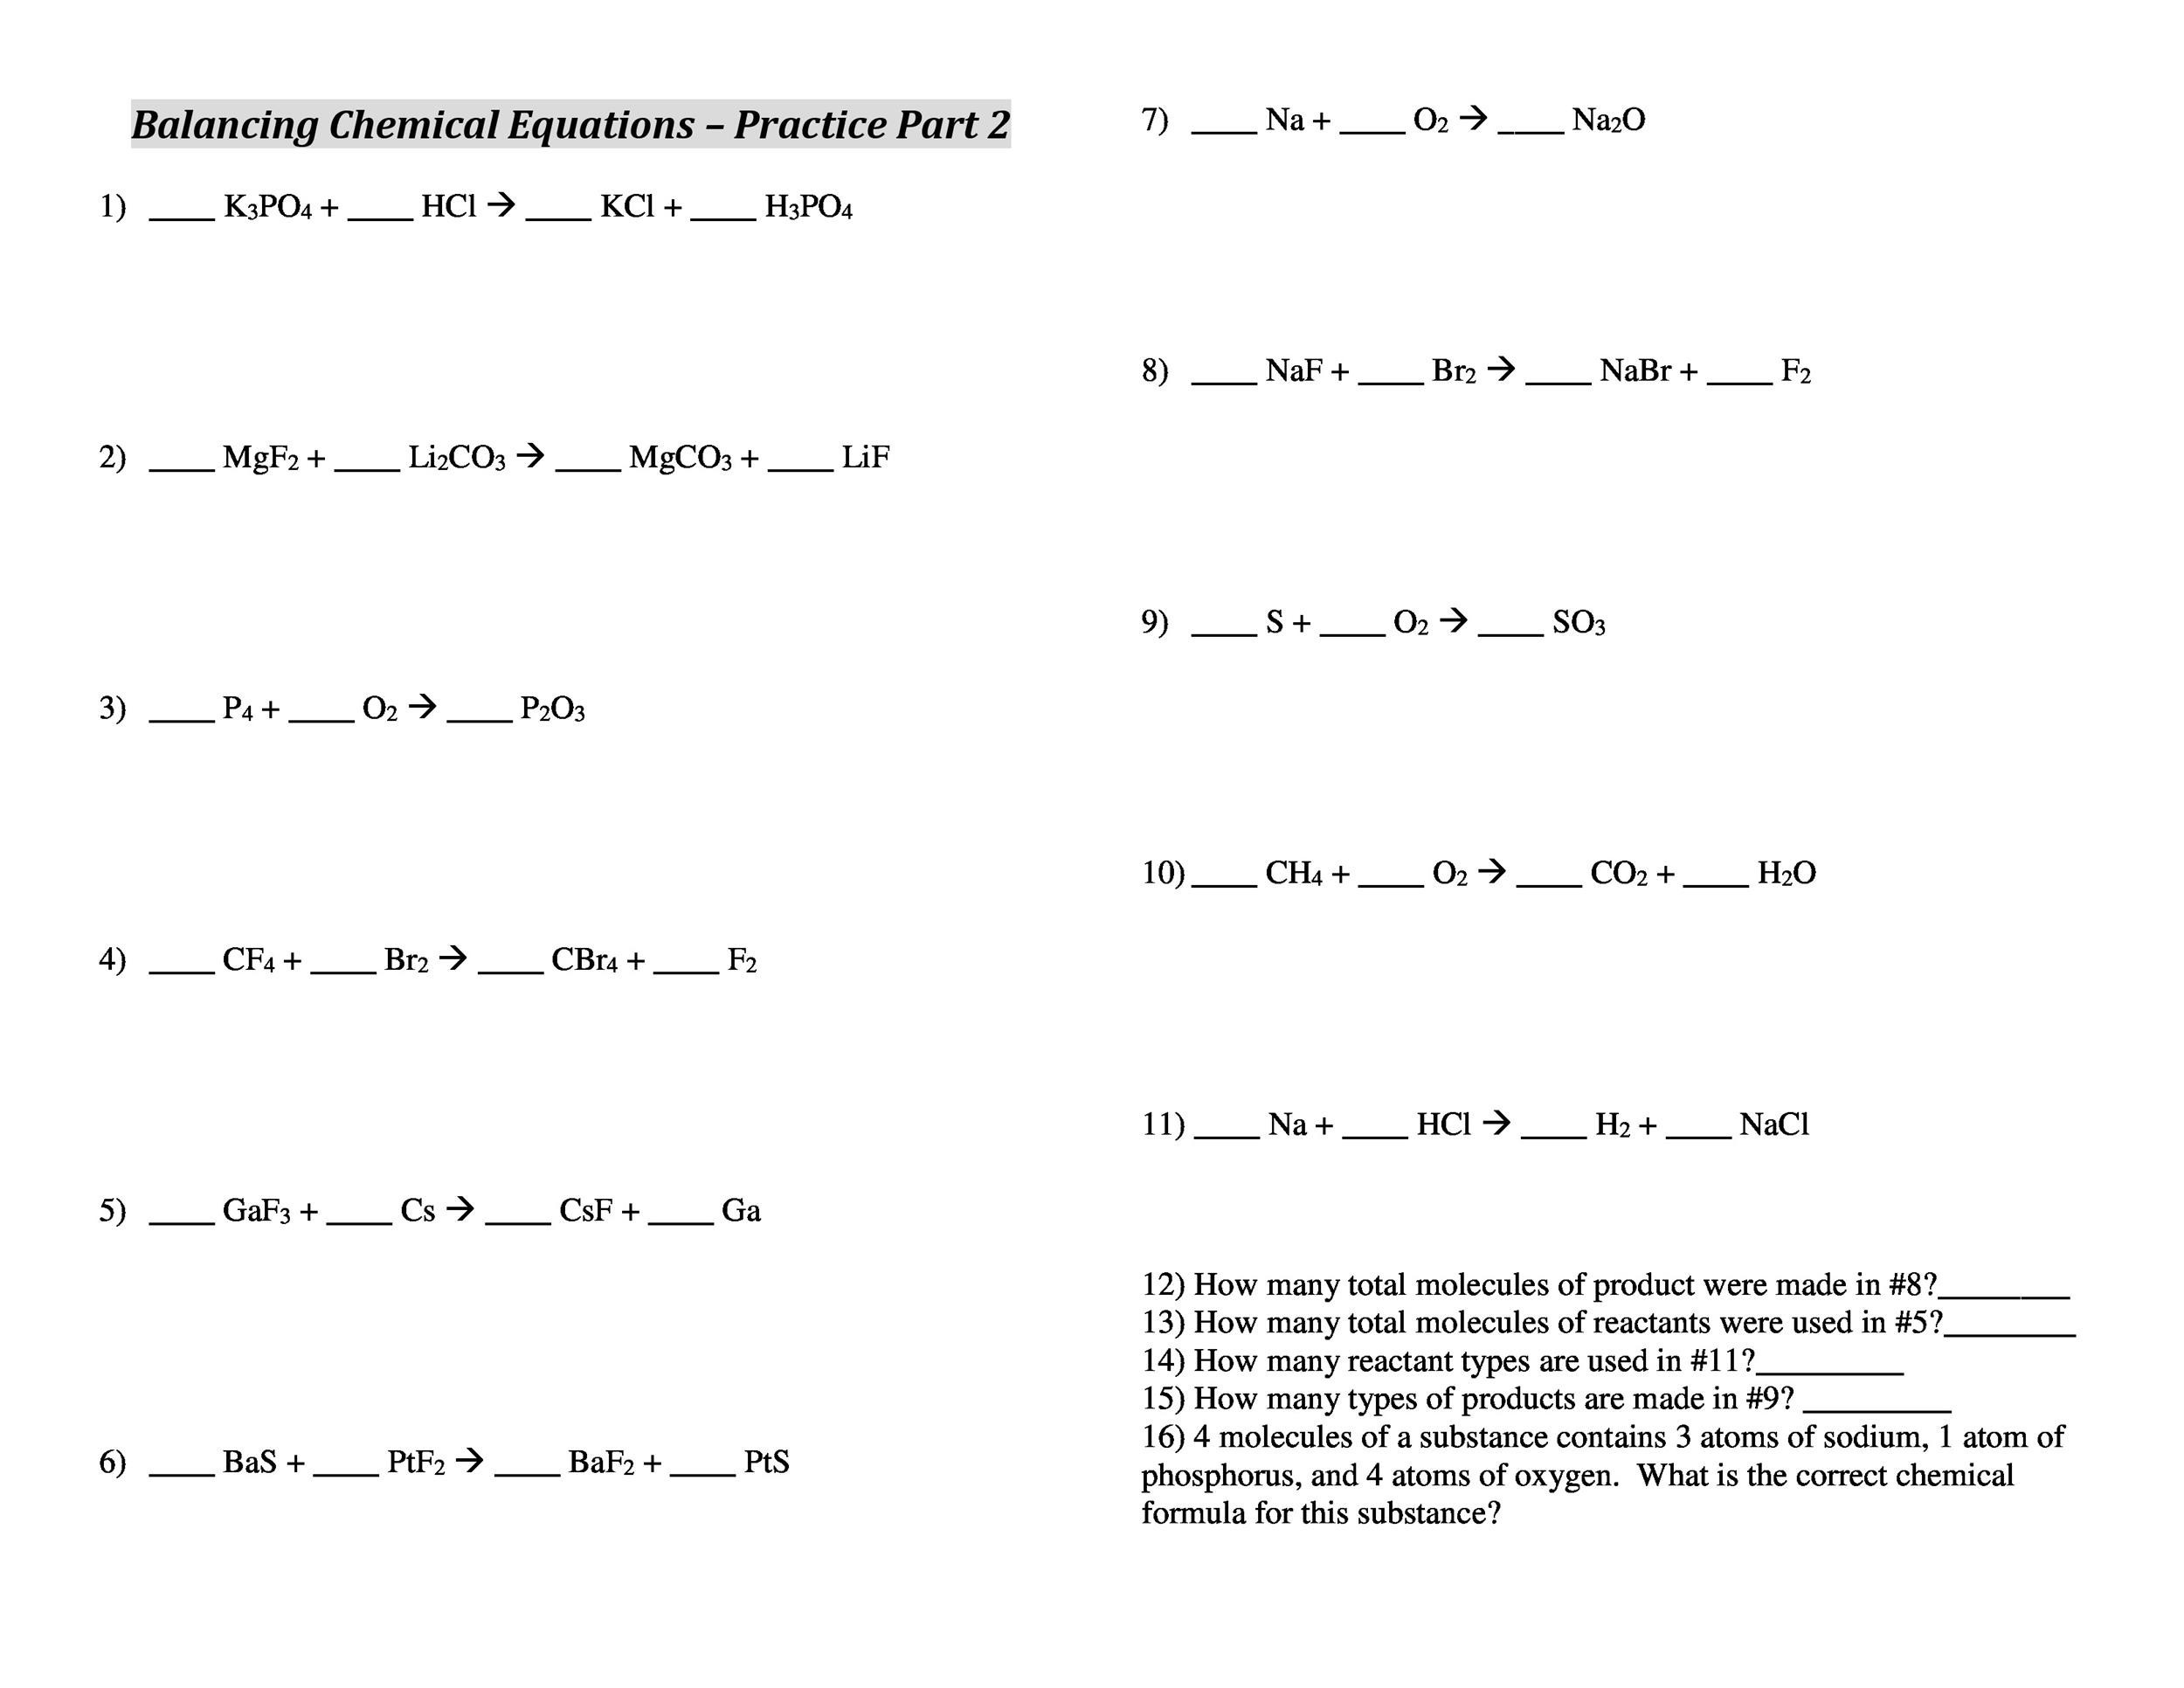 49 Balancing Chemical Equations Worksheets With Answers. Free Balancing Equations 38. Worksheet. Balancing Equations Worksheet Answer Key At Mspartners.co